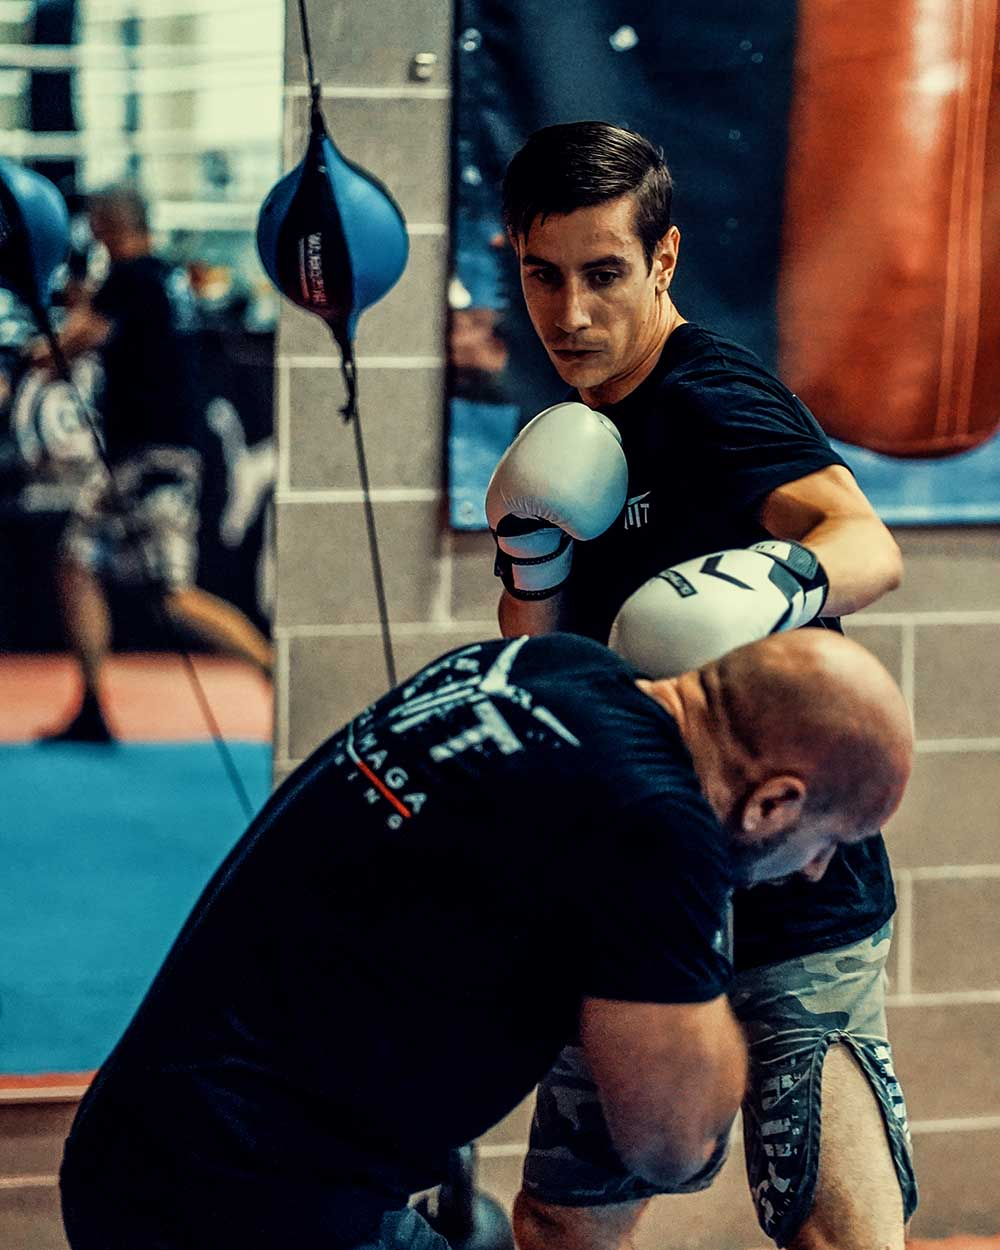 Krav Maga Training real fighting and beating | FOTO | PHOTOS